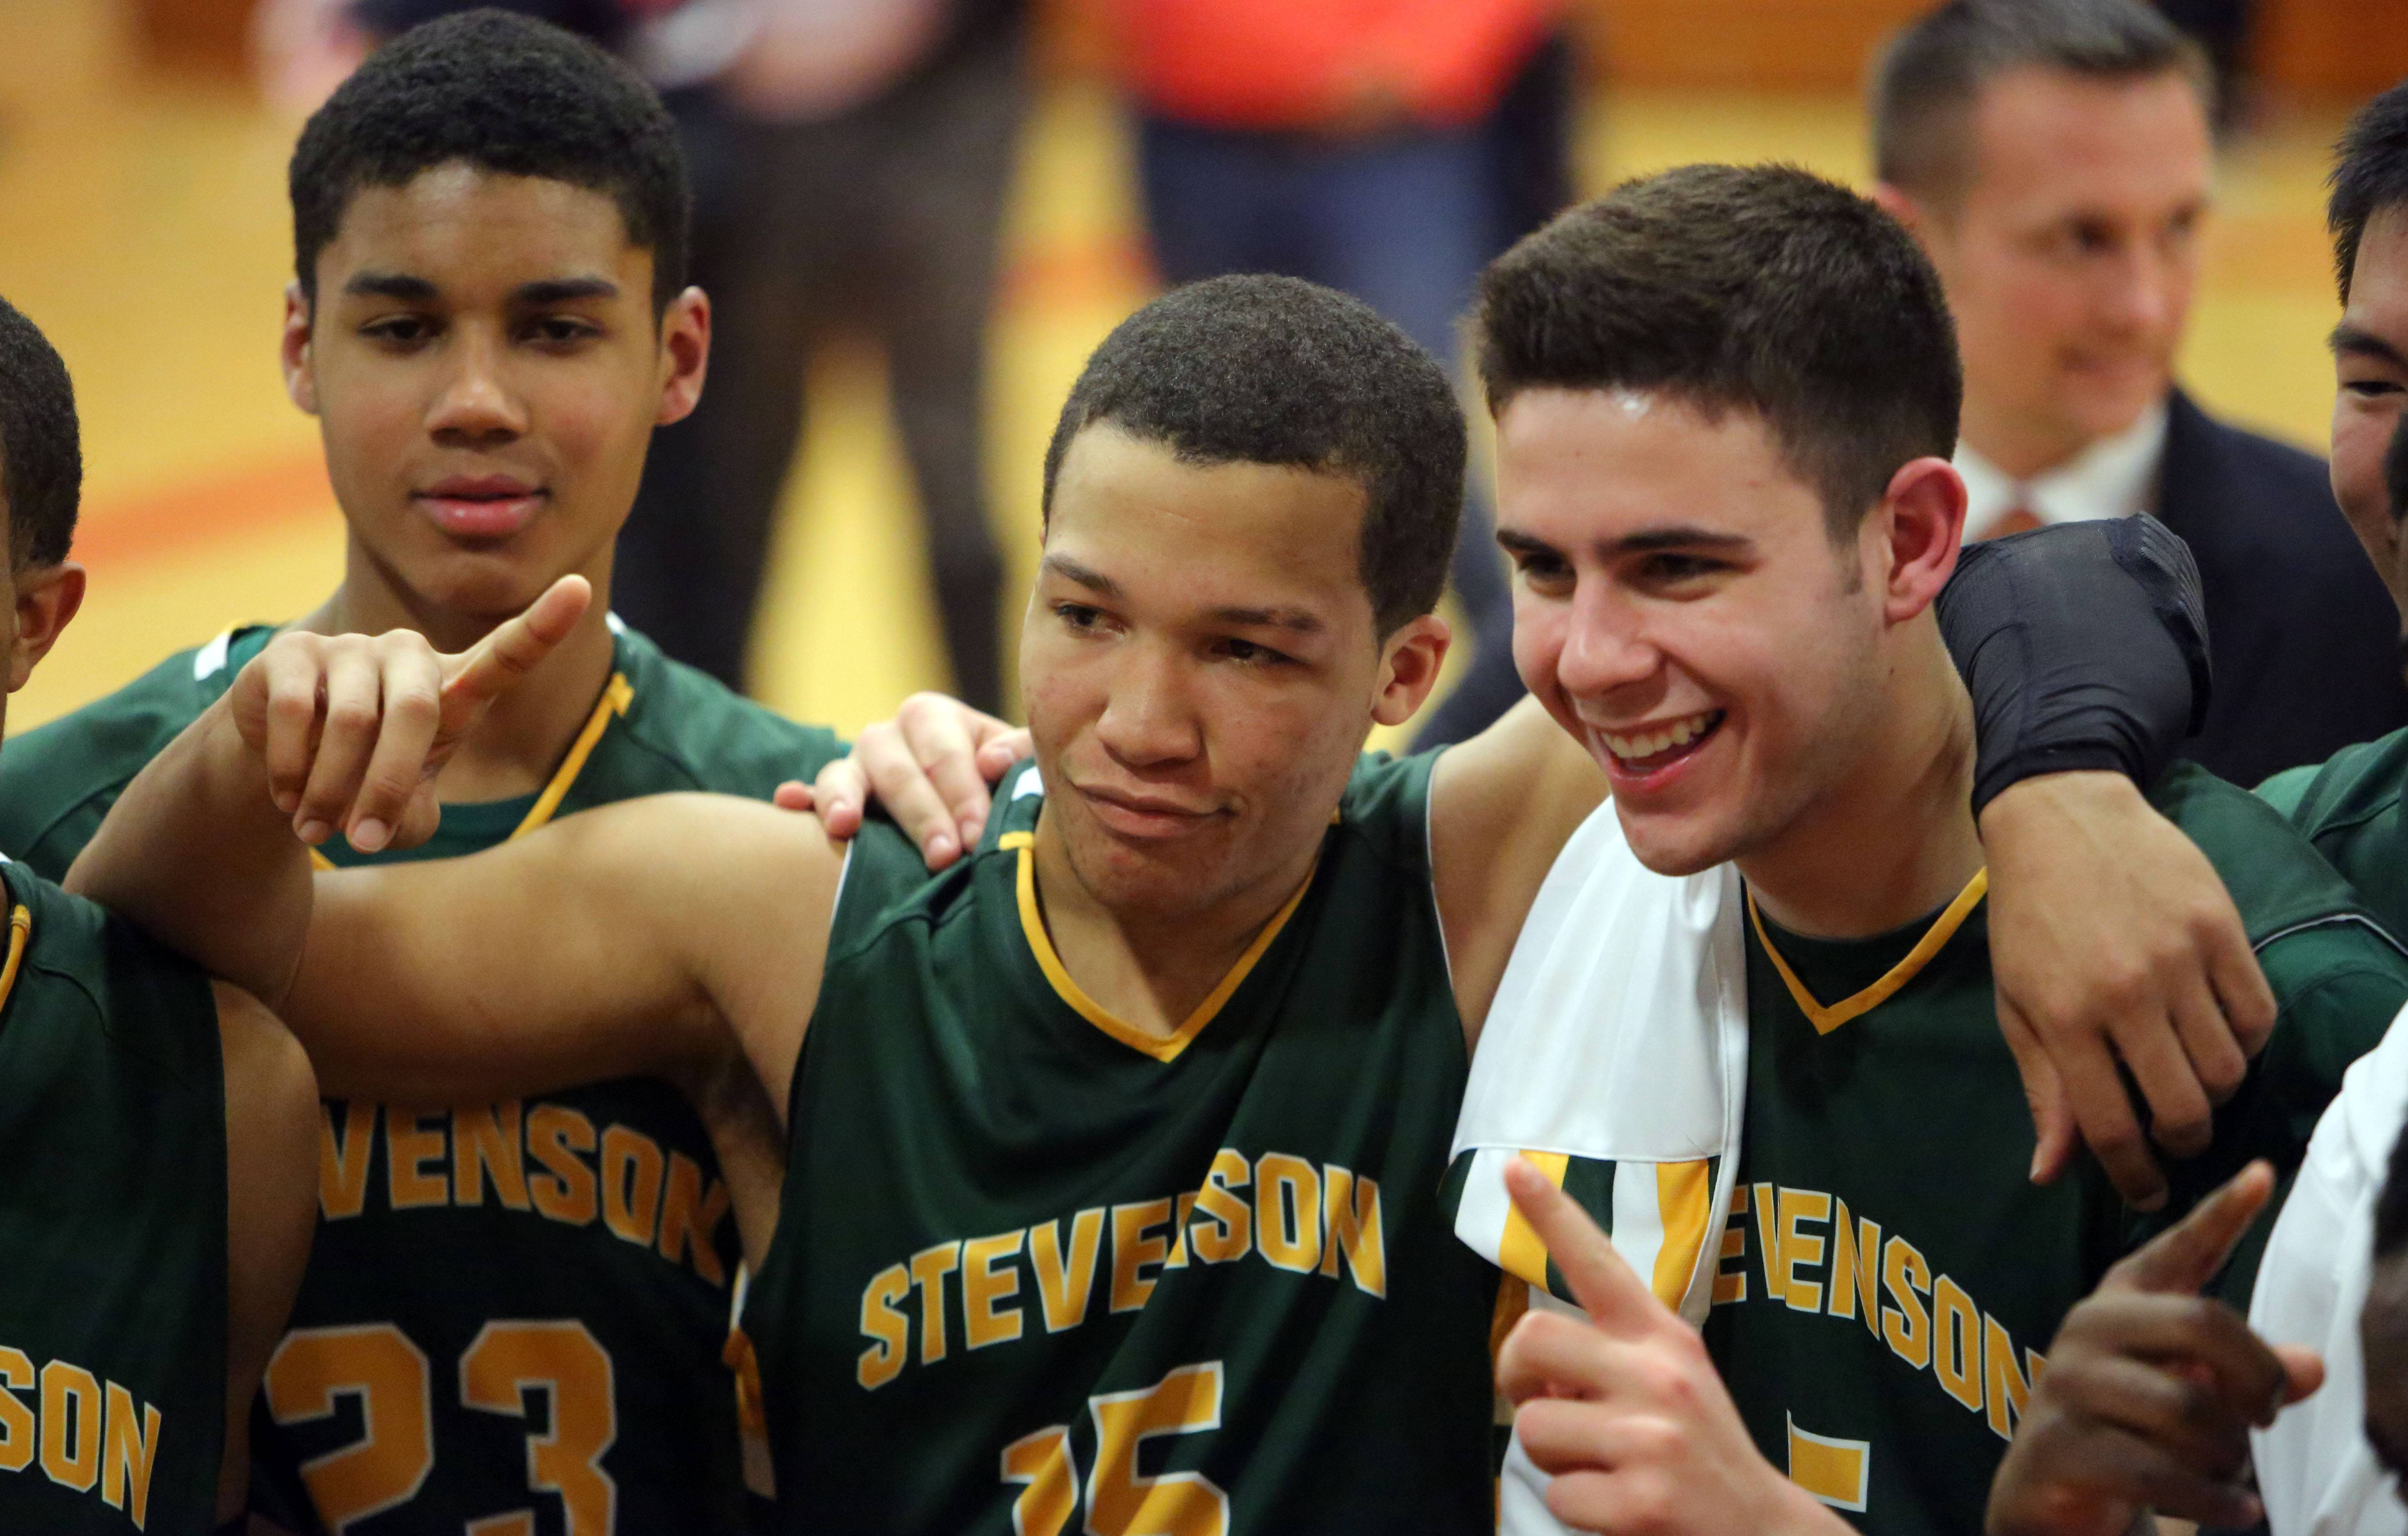 Stevenson's Jalen Brunson, left, and Parker Nichols give the number one sign as they pose for pictures after their victory over North Chicago in the North Suburban Conference championship game Wednesday night at North Chicago.